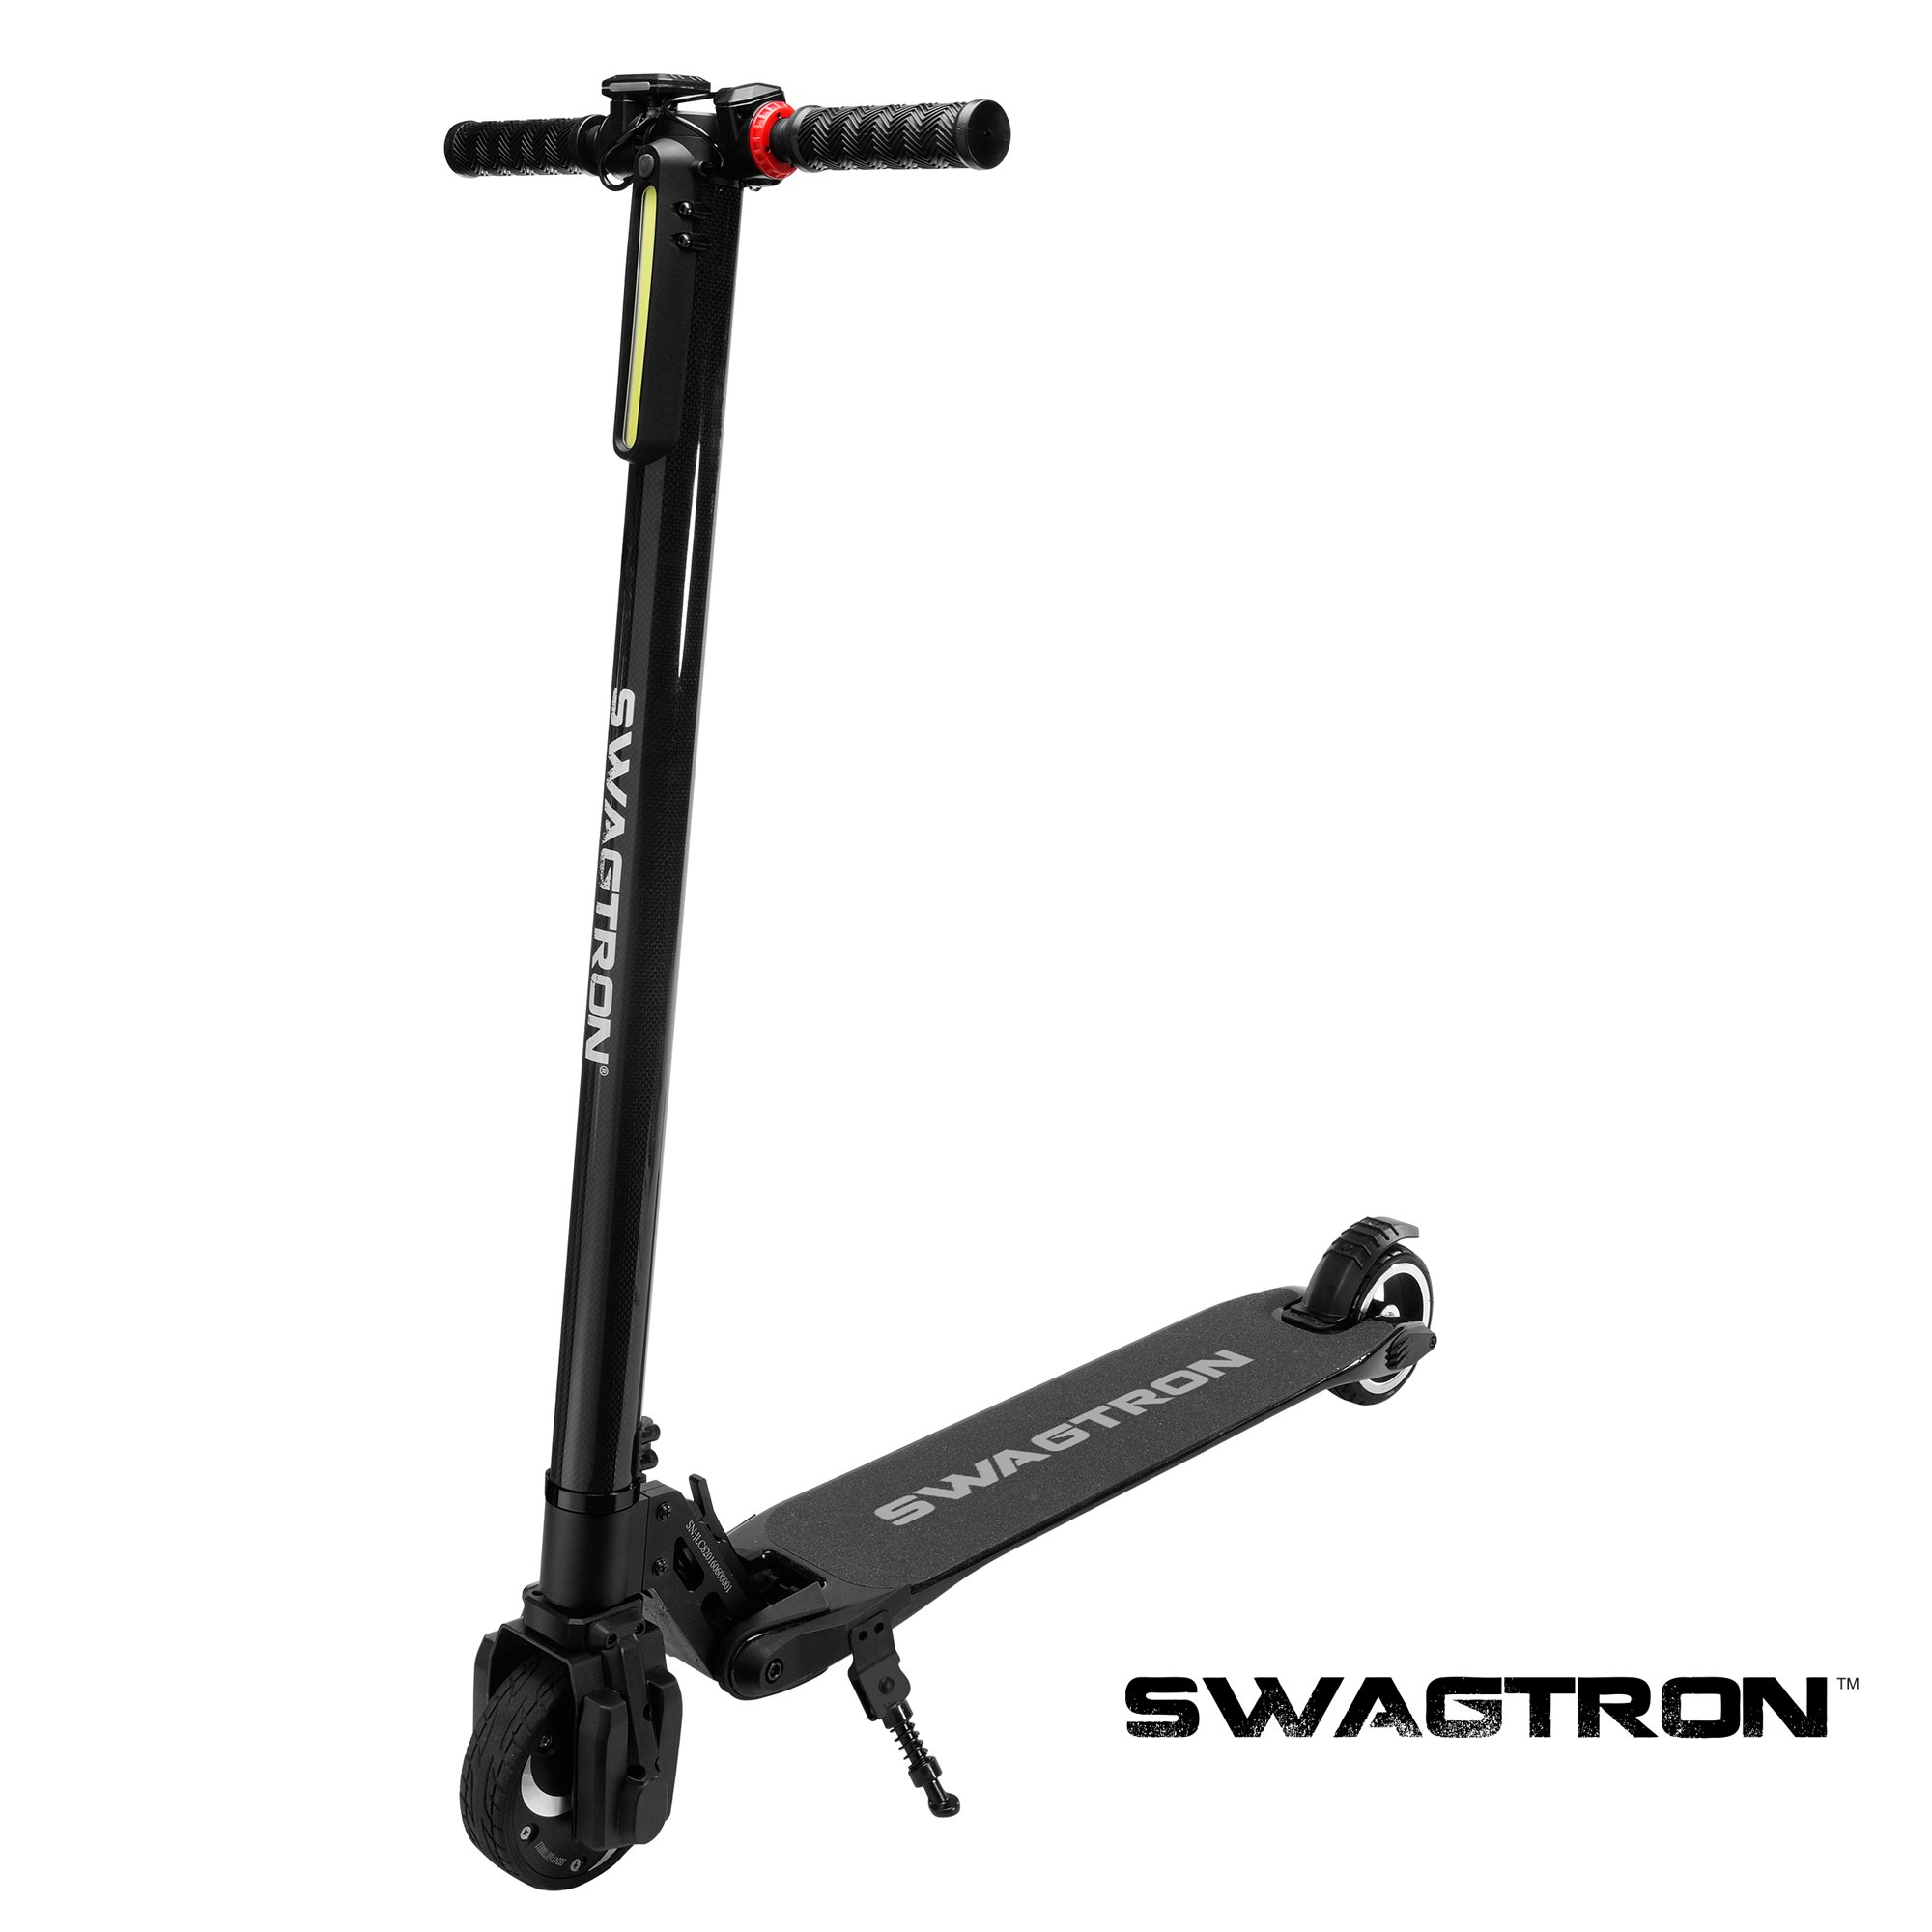 Swagtron SWAGGER 1, BLACK High Speed Adult Electric Scooter; Ultra-Lightweight Carbon Fiber; Easy Fold-n-Carry Design (Black) by Swagtron